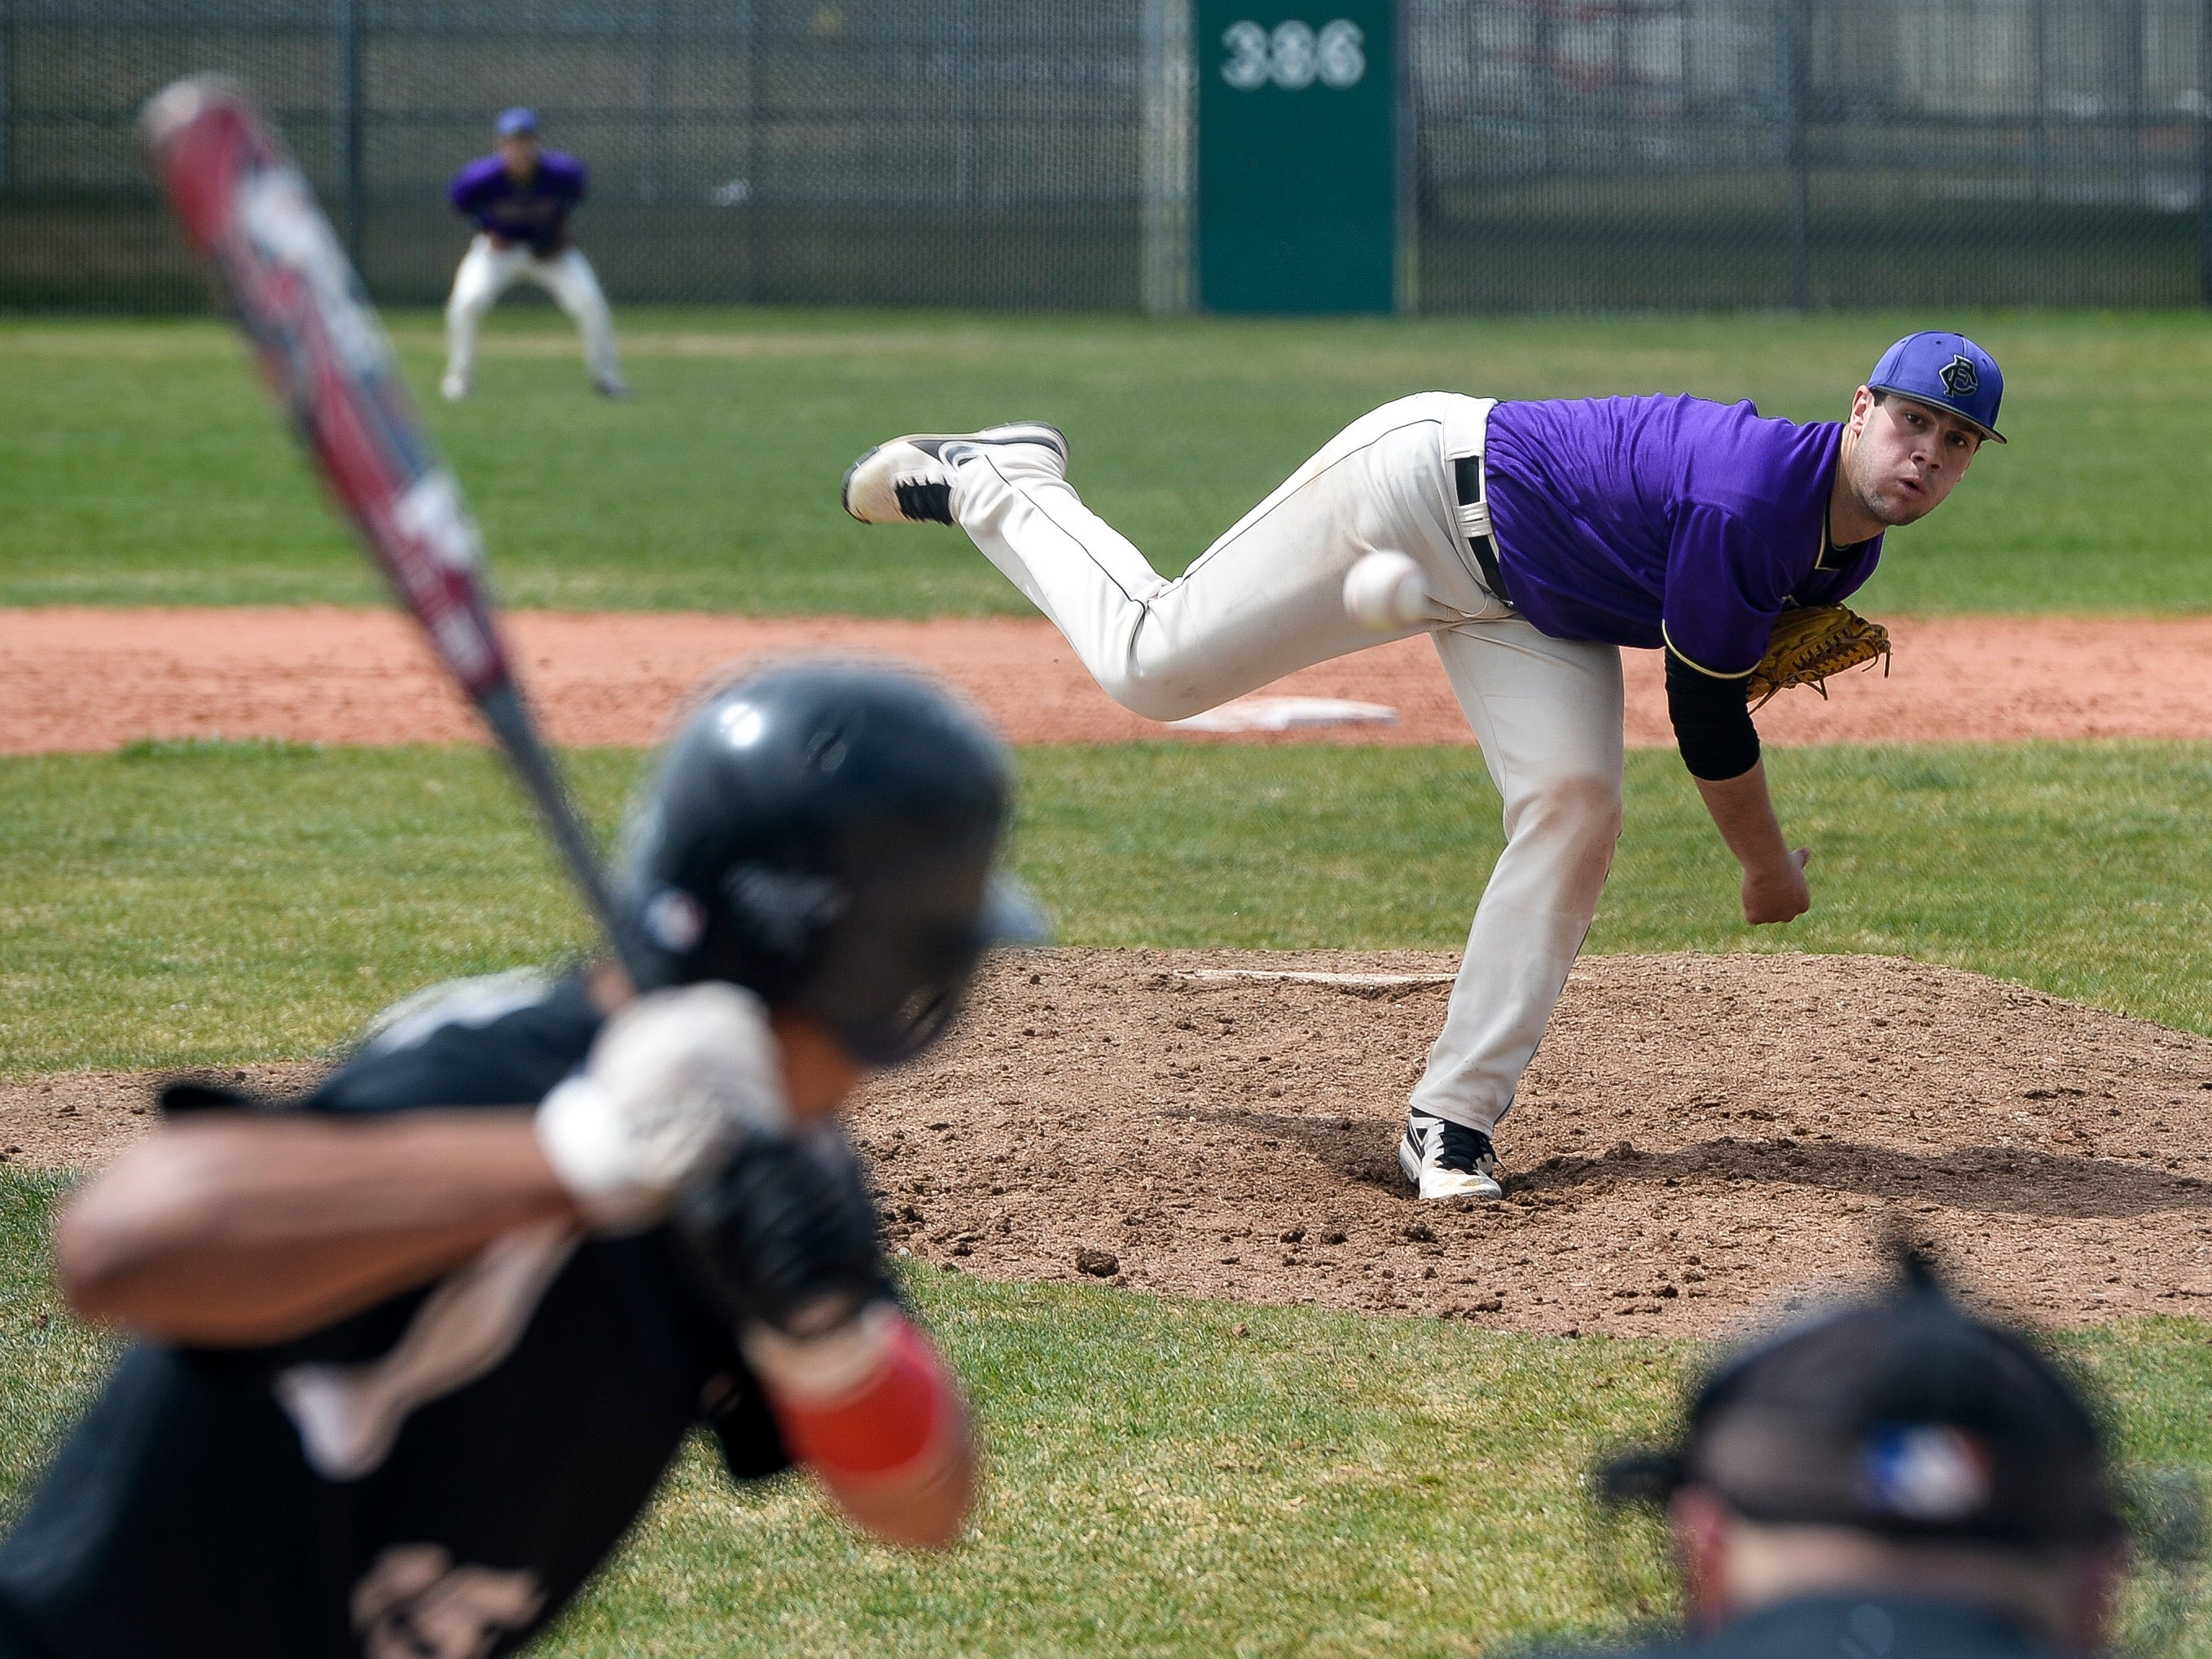 Fort Collins High School's Zach Fees, shown in a game last season, had four RBI and picked up the win on the mound in a 6-3 win over Loveland Wednesday afternoon.